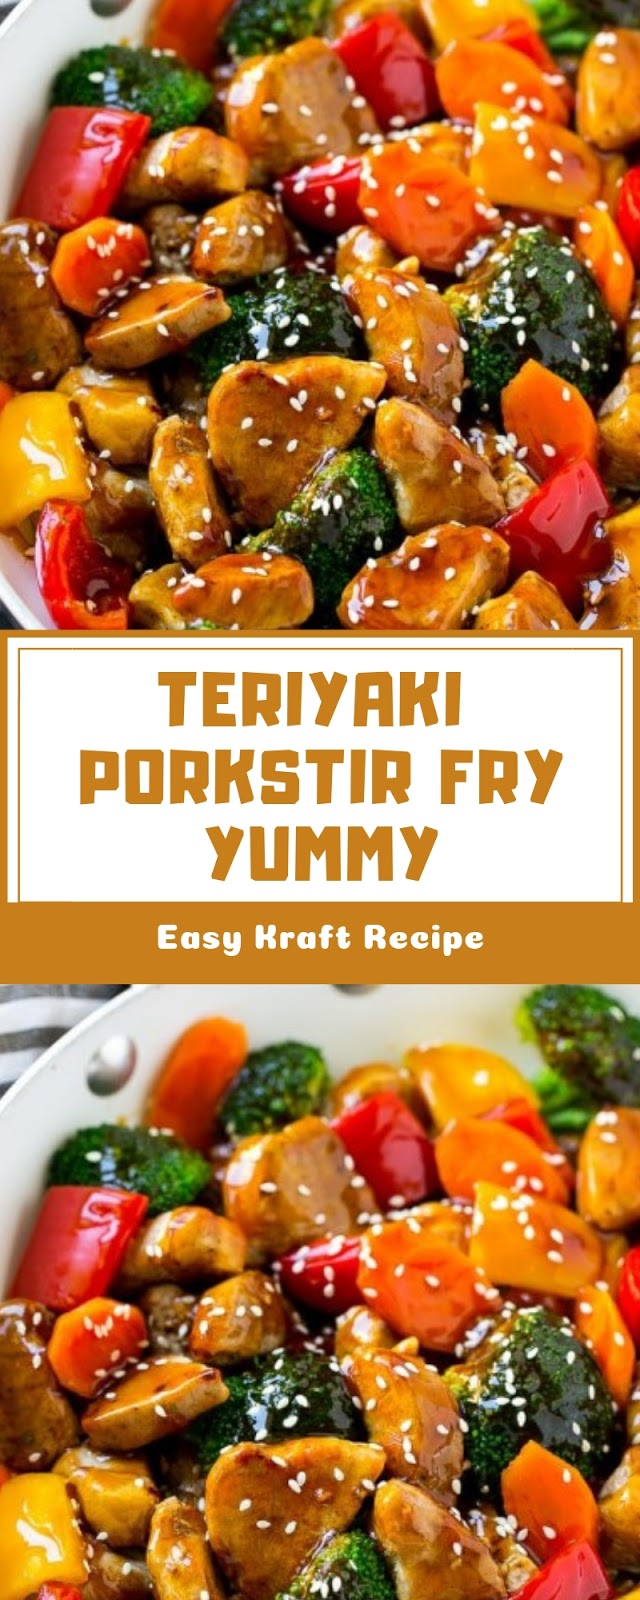 TERIYAKI PORK STIR FRY YUMMY